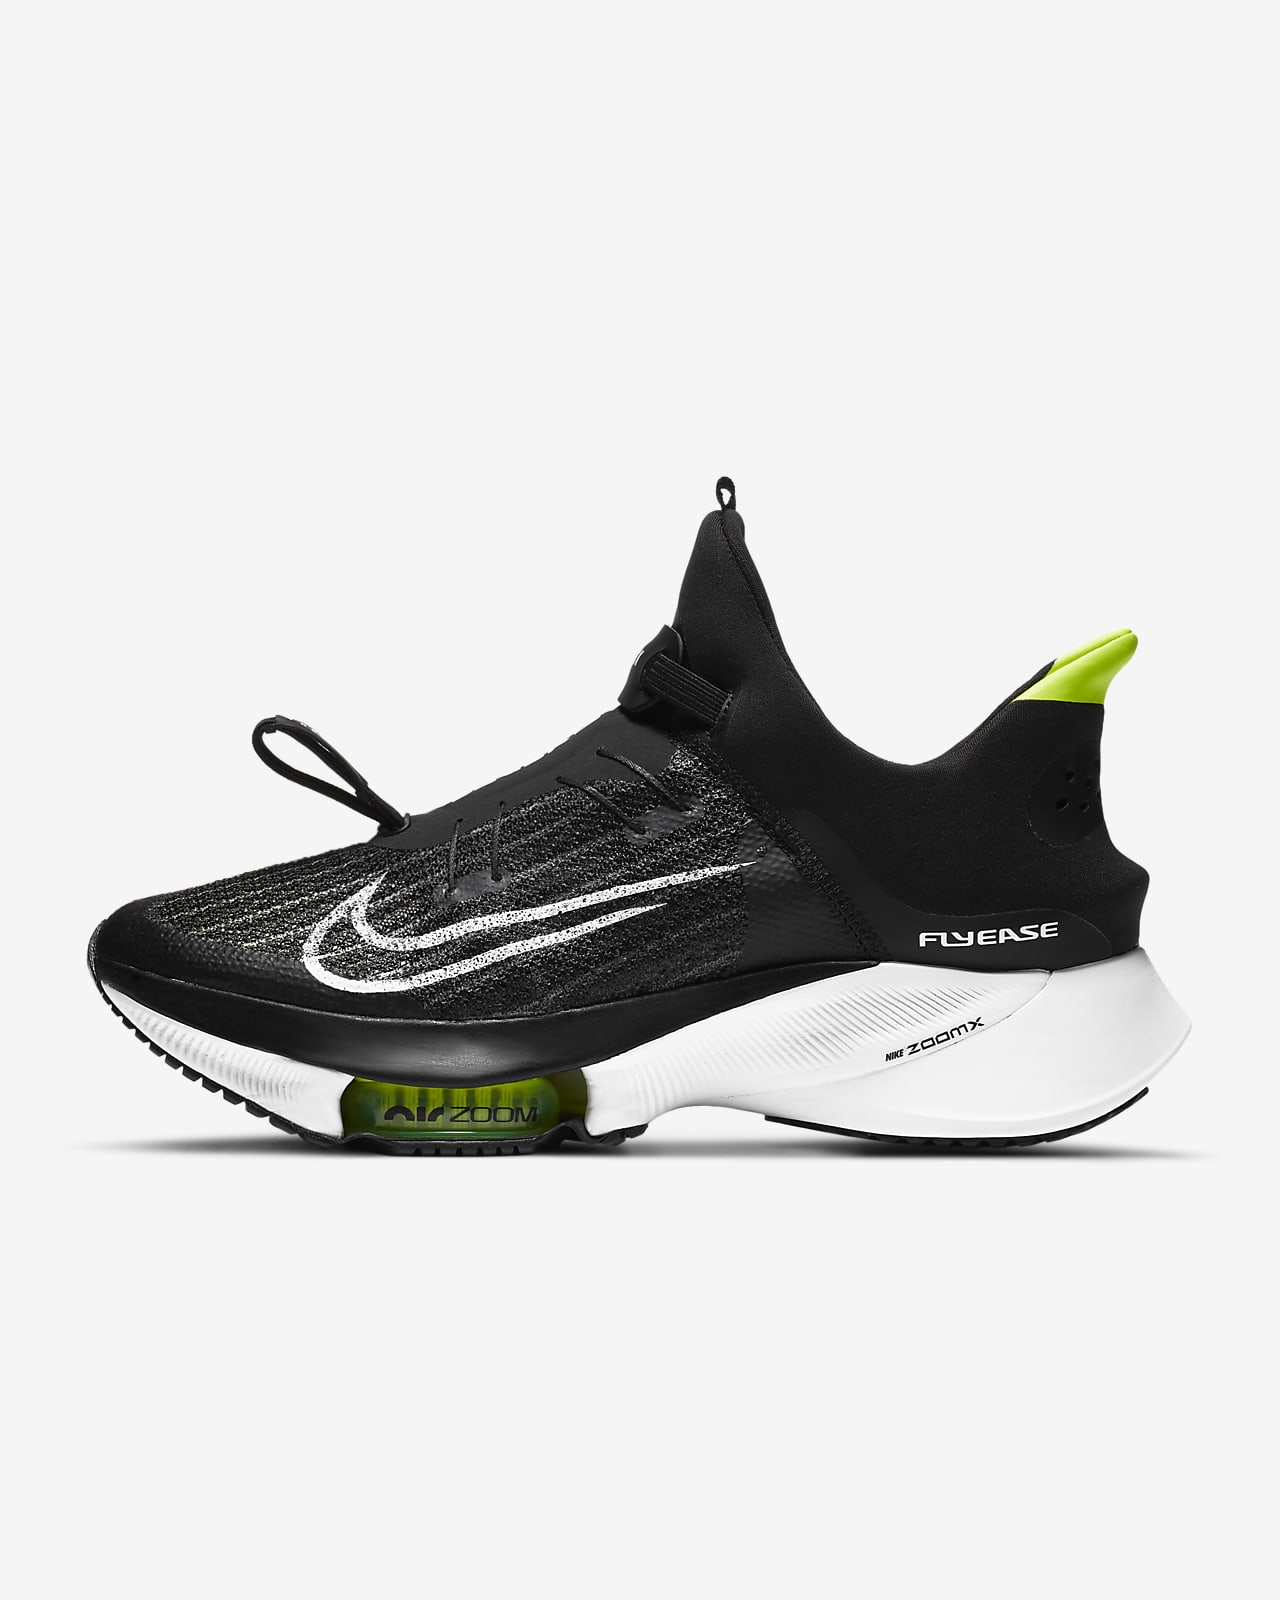 Chaussure de running Nike Air Zoom Tempo NEXT% FlyEase pour Homme